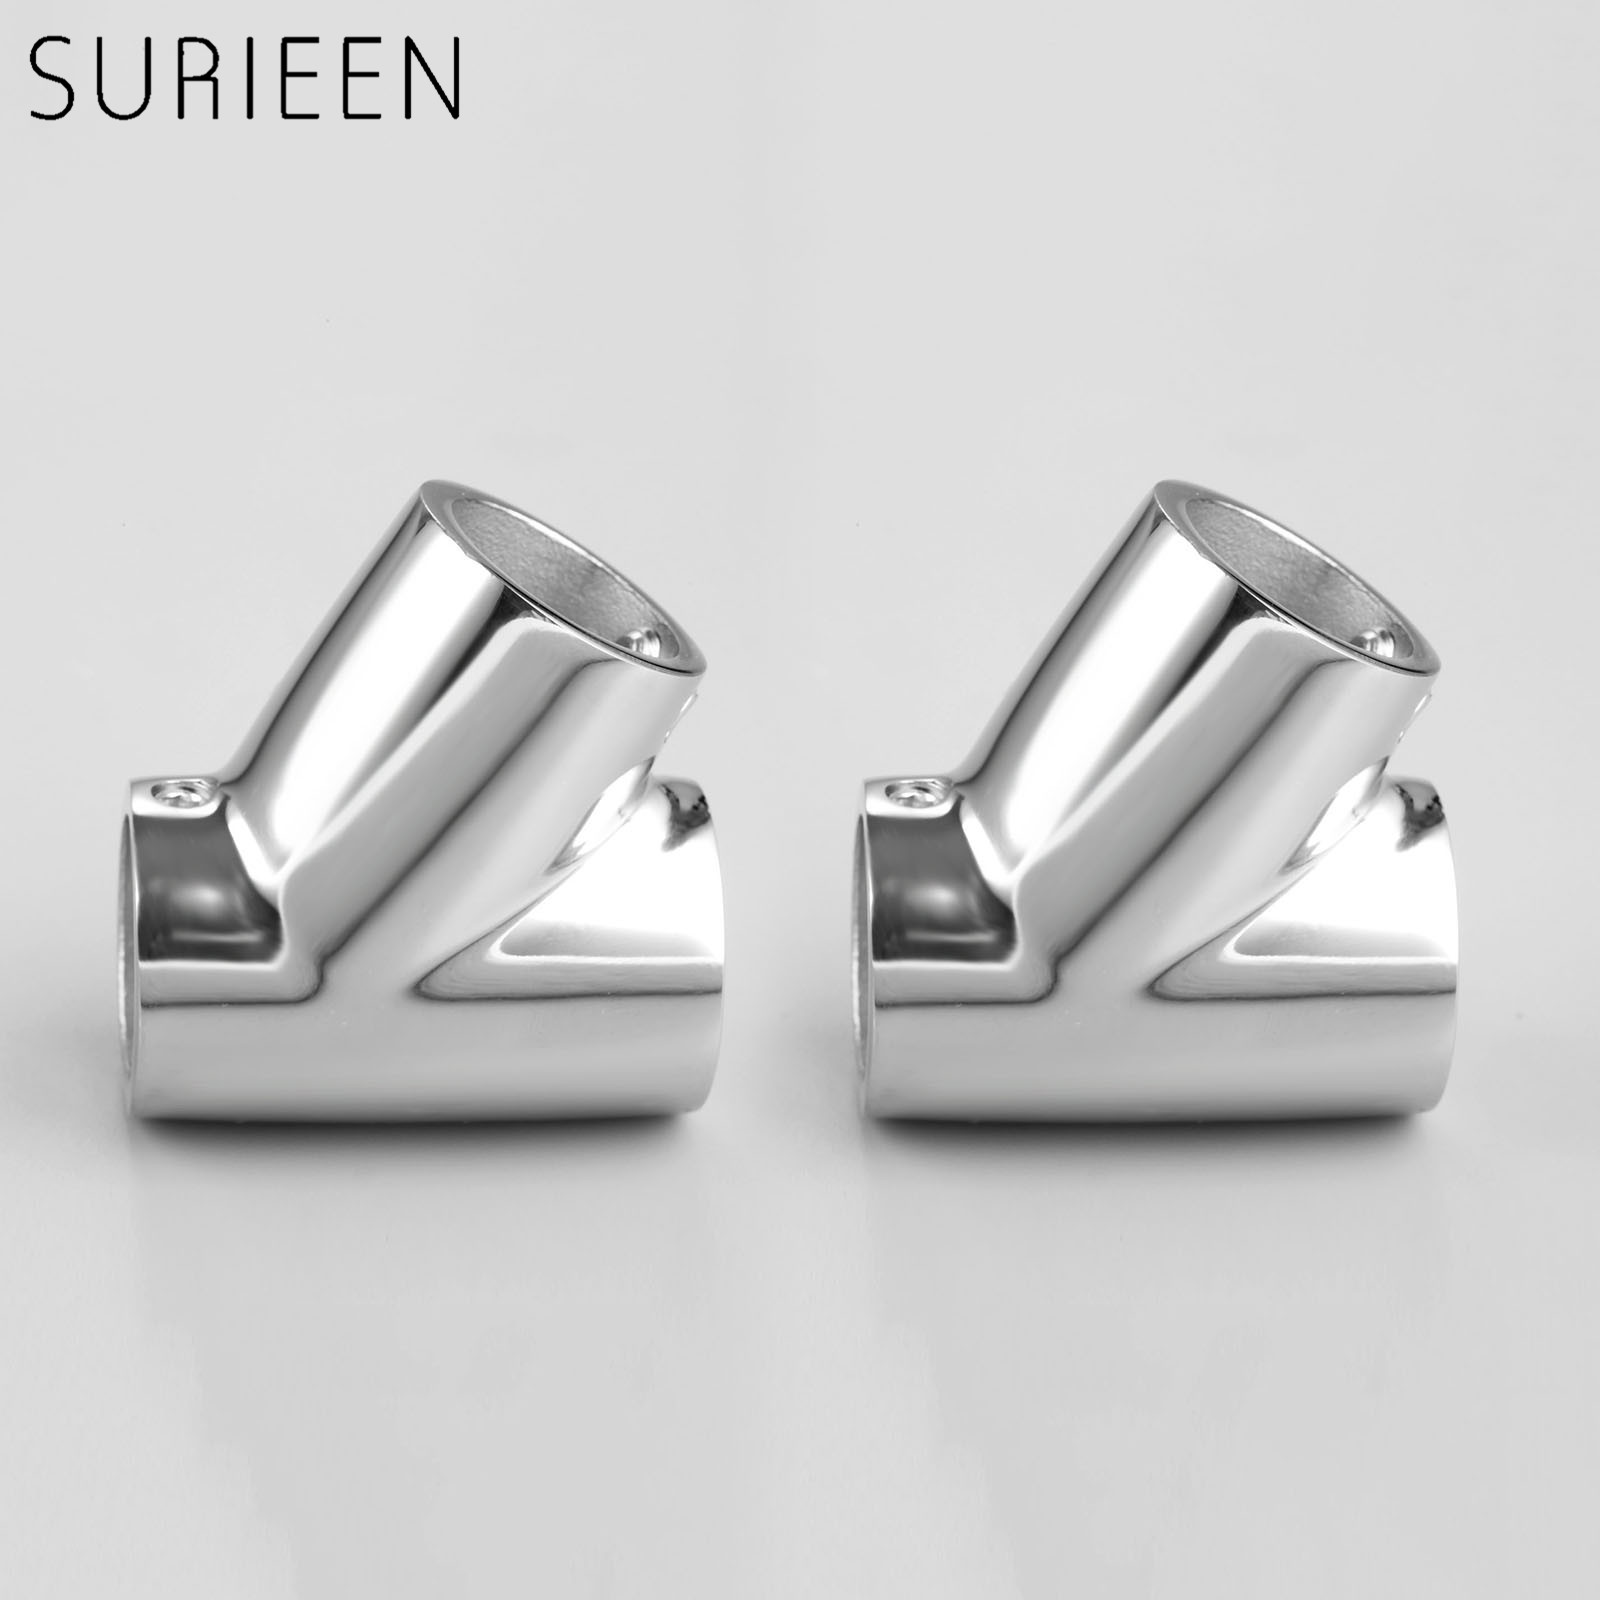 SURIEEN 2Pcs Marine Boat Stainless Steel Hand Rail Fitting 60 Degree Tee Hardware 7/8 Inch 22mm Tube Boat Accessories Marine